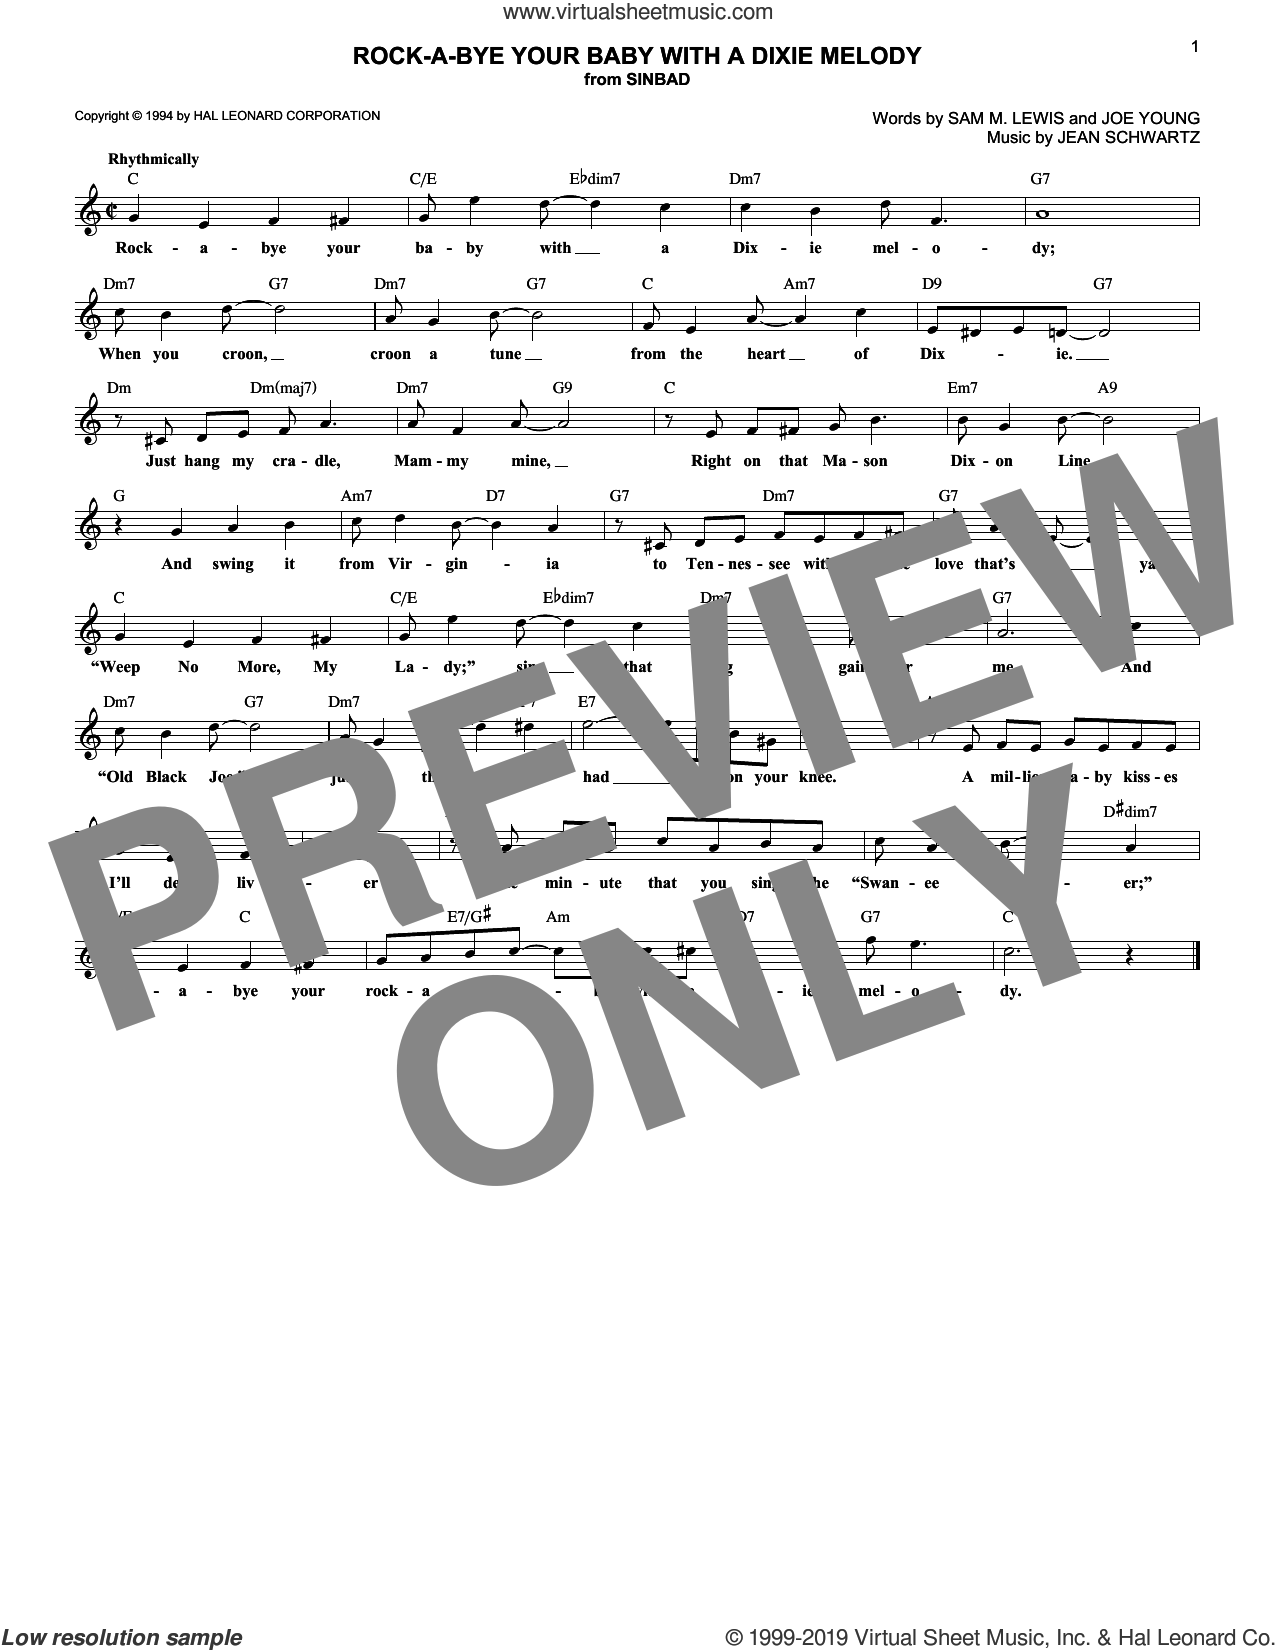 Rock-A-Bye Your Baby With A Dixie Melody sheet music for voice and other instruments (fake book) by Al Jolson, Jean Schwartz, Joe Young and Sam Lewis, intermediate skill level